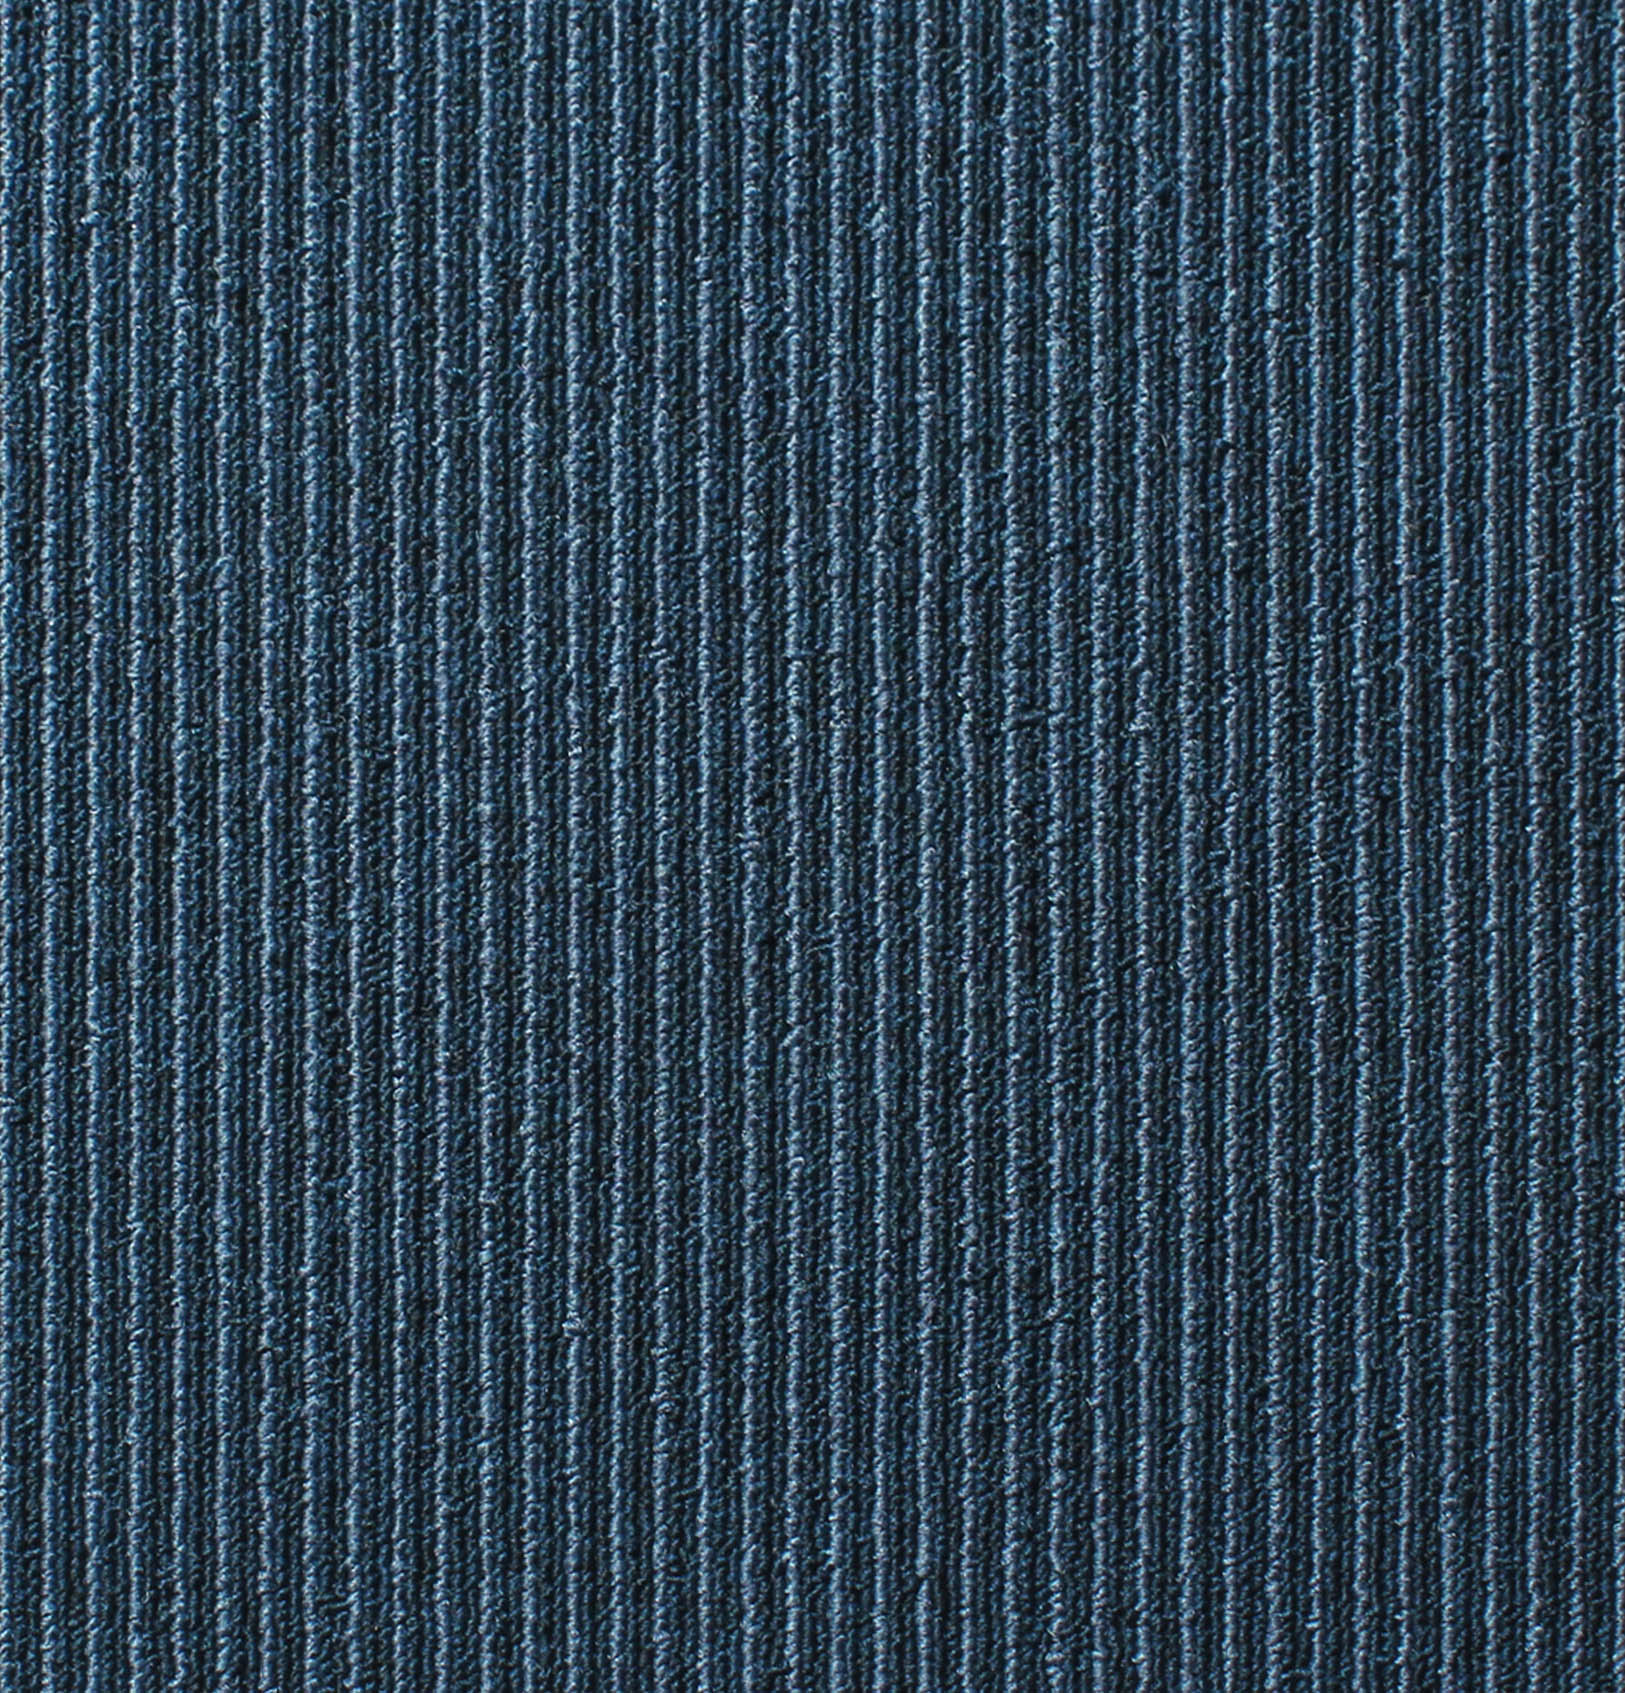 Zsba8 100 Polypropylene Carpet Tile 50x50 Pp Carpet Tiles